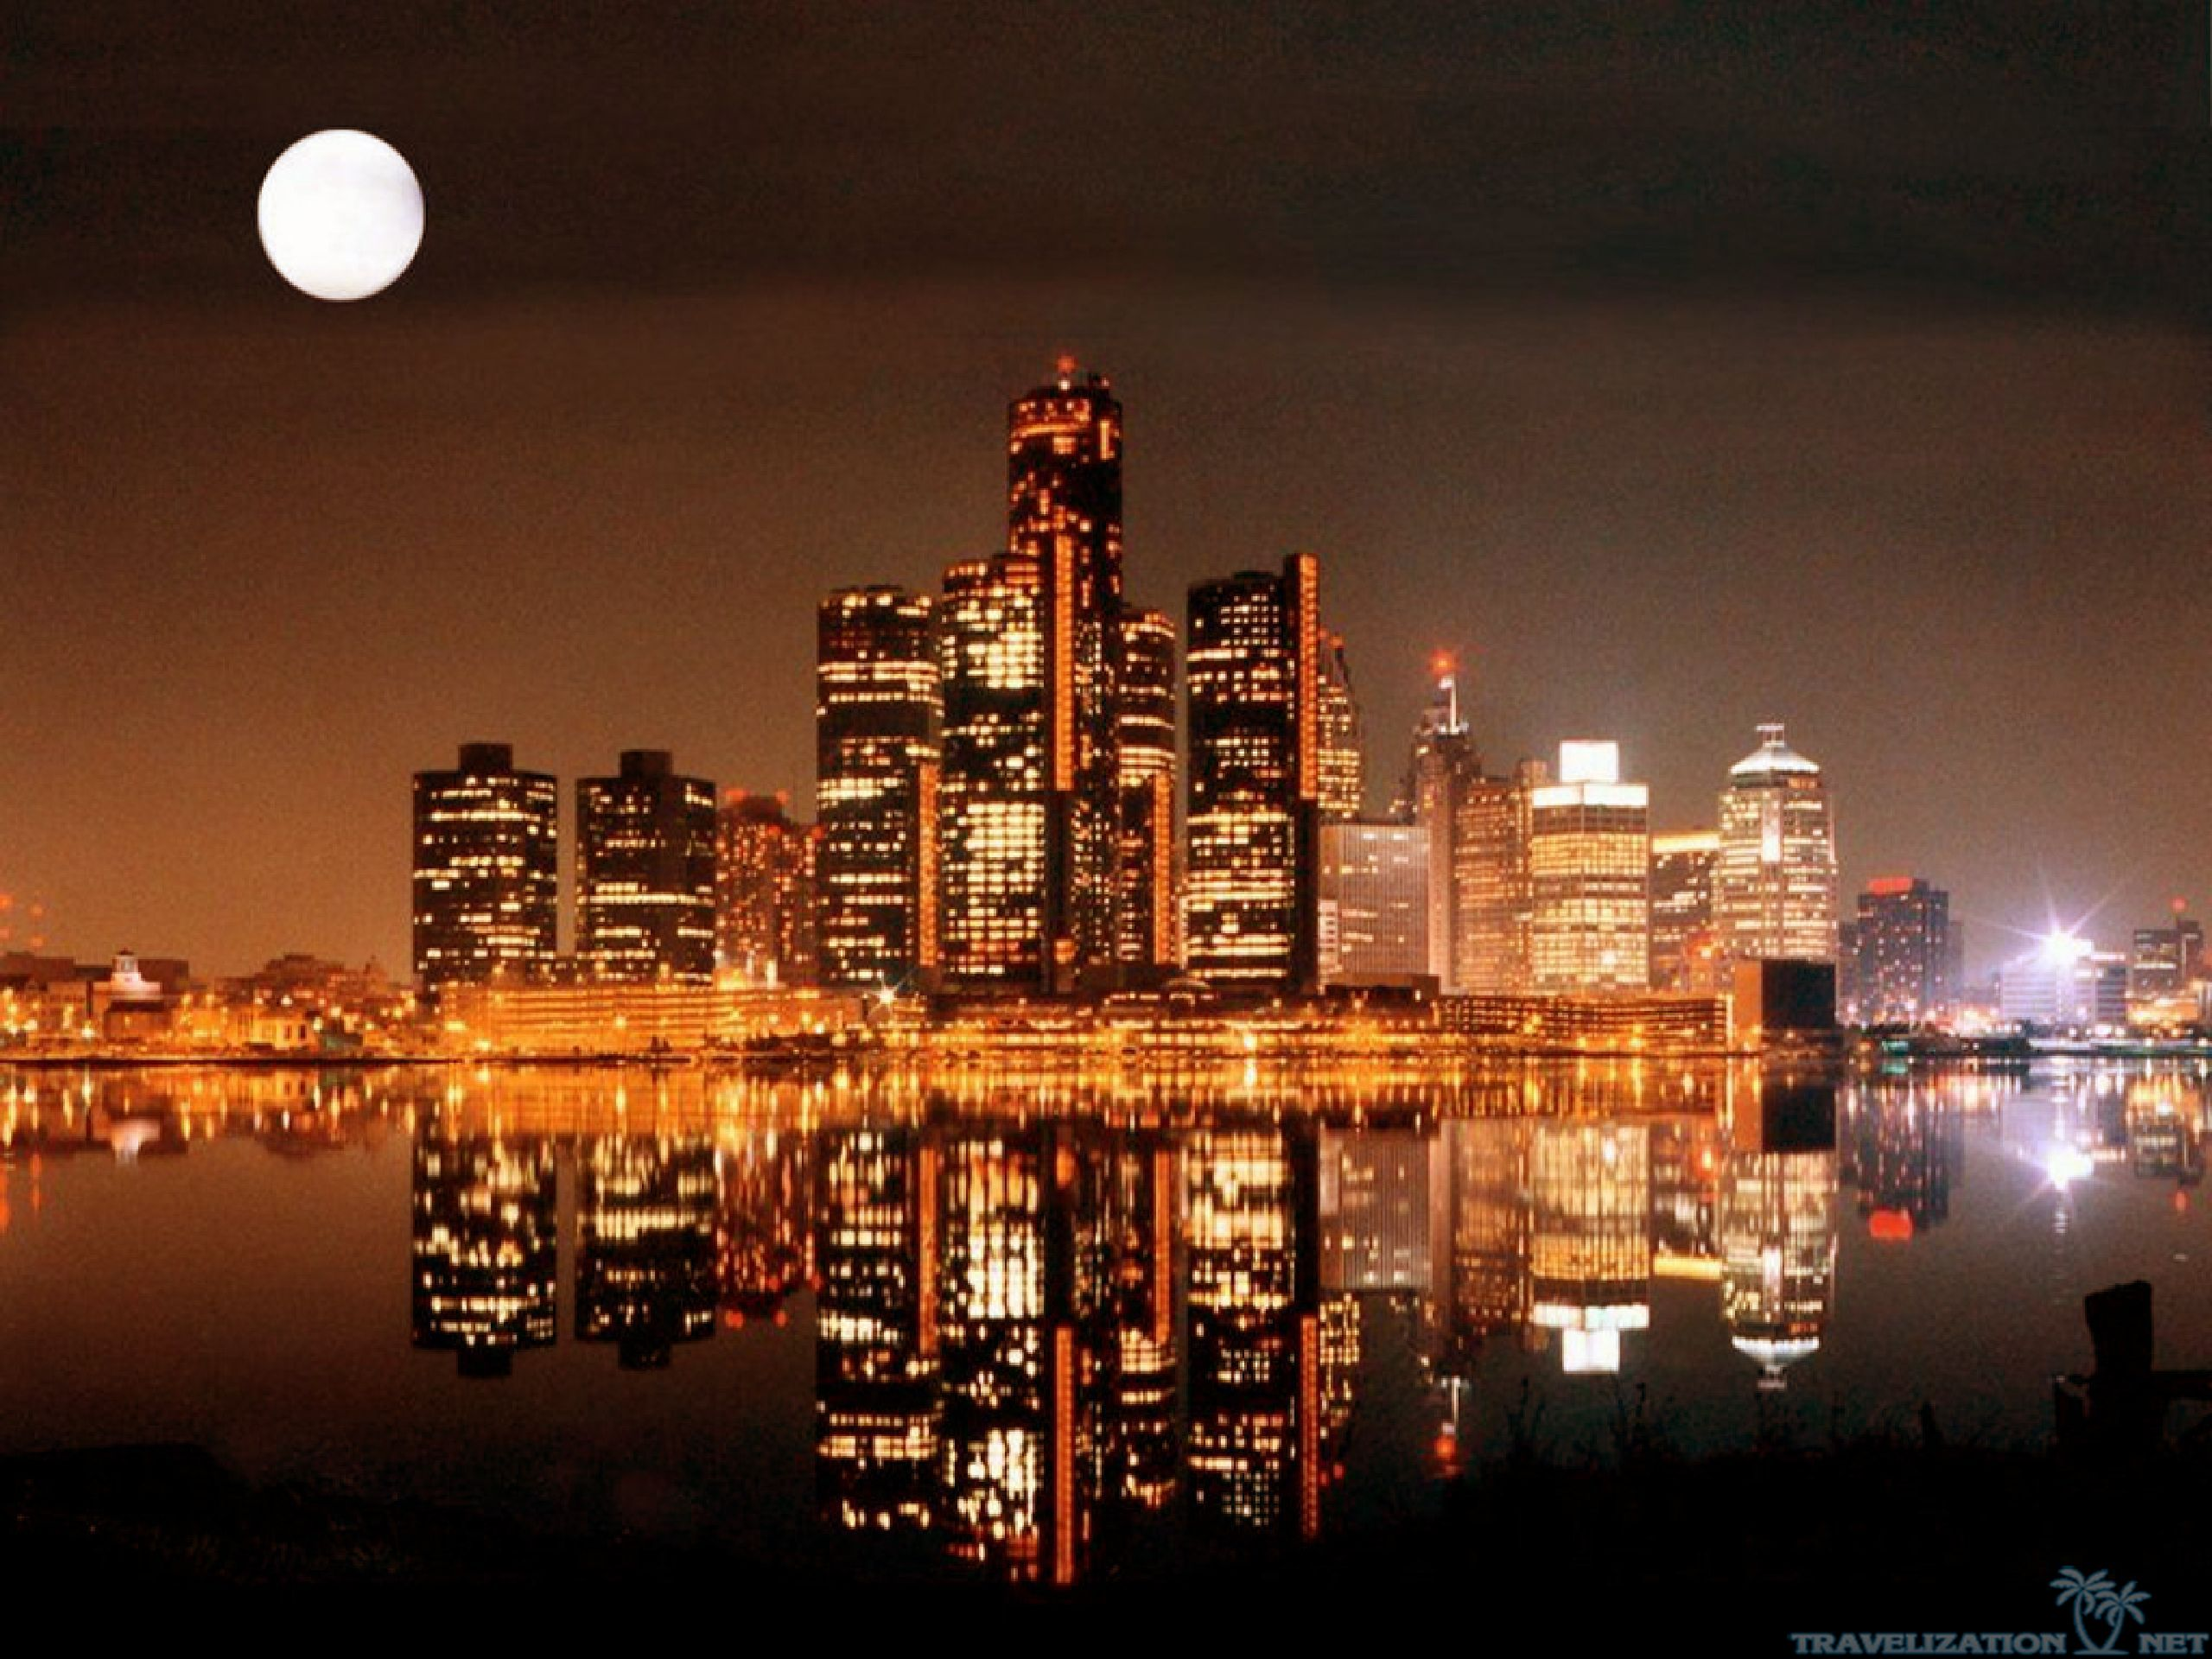 1_detroit-cities-at-night-wallpapers-2560x1920.jpg